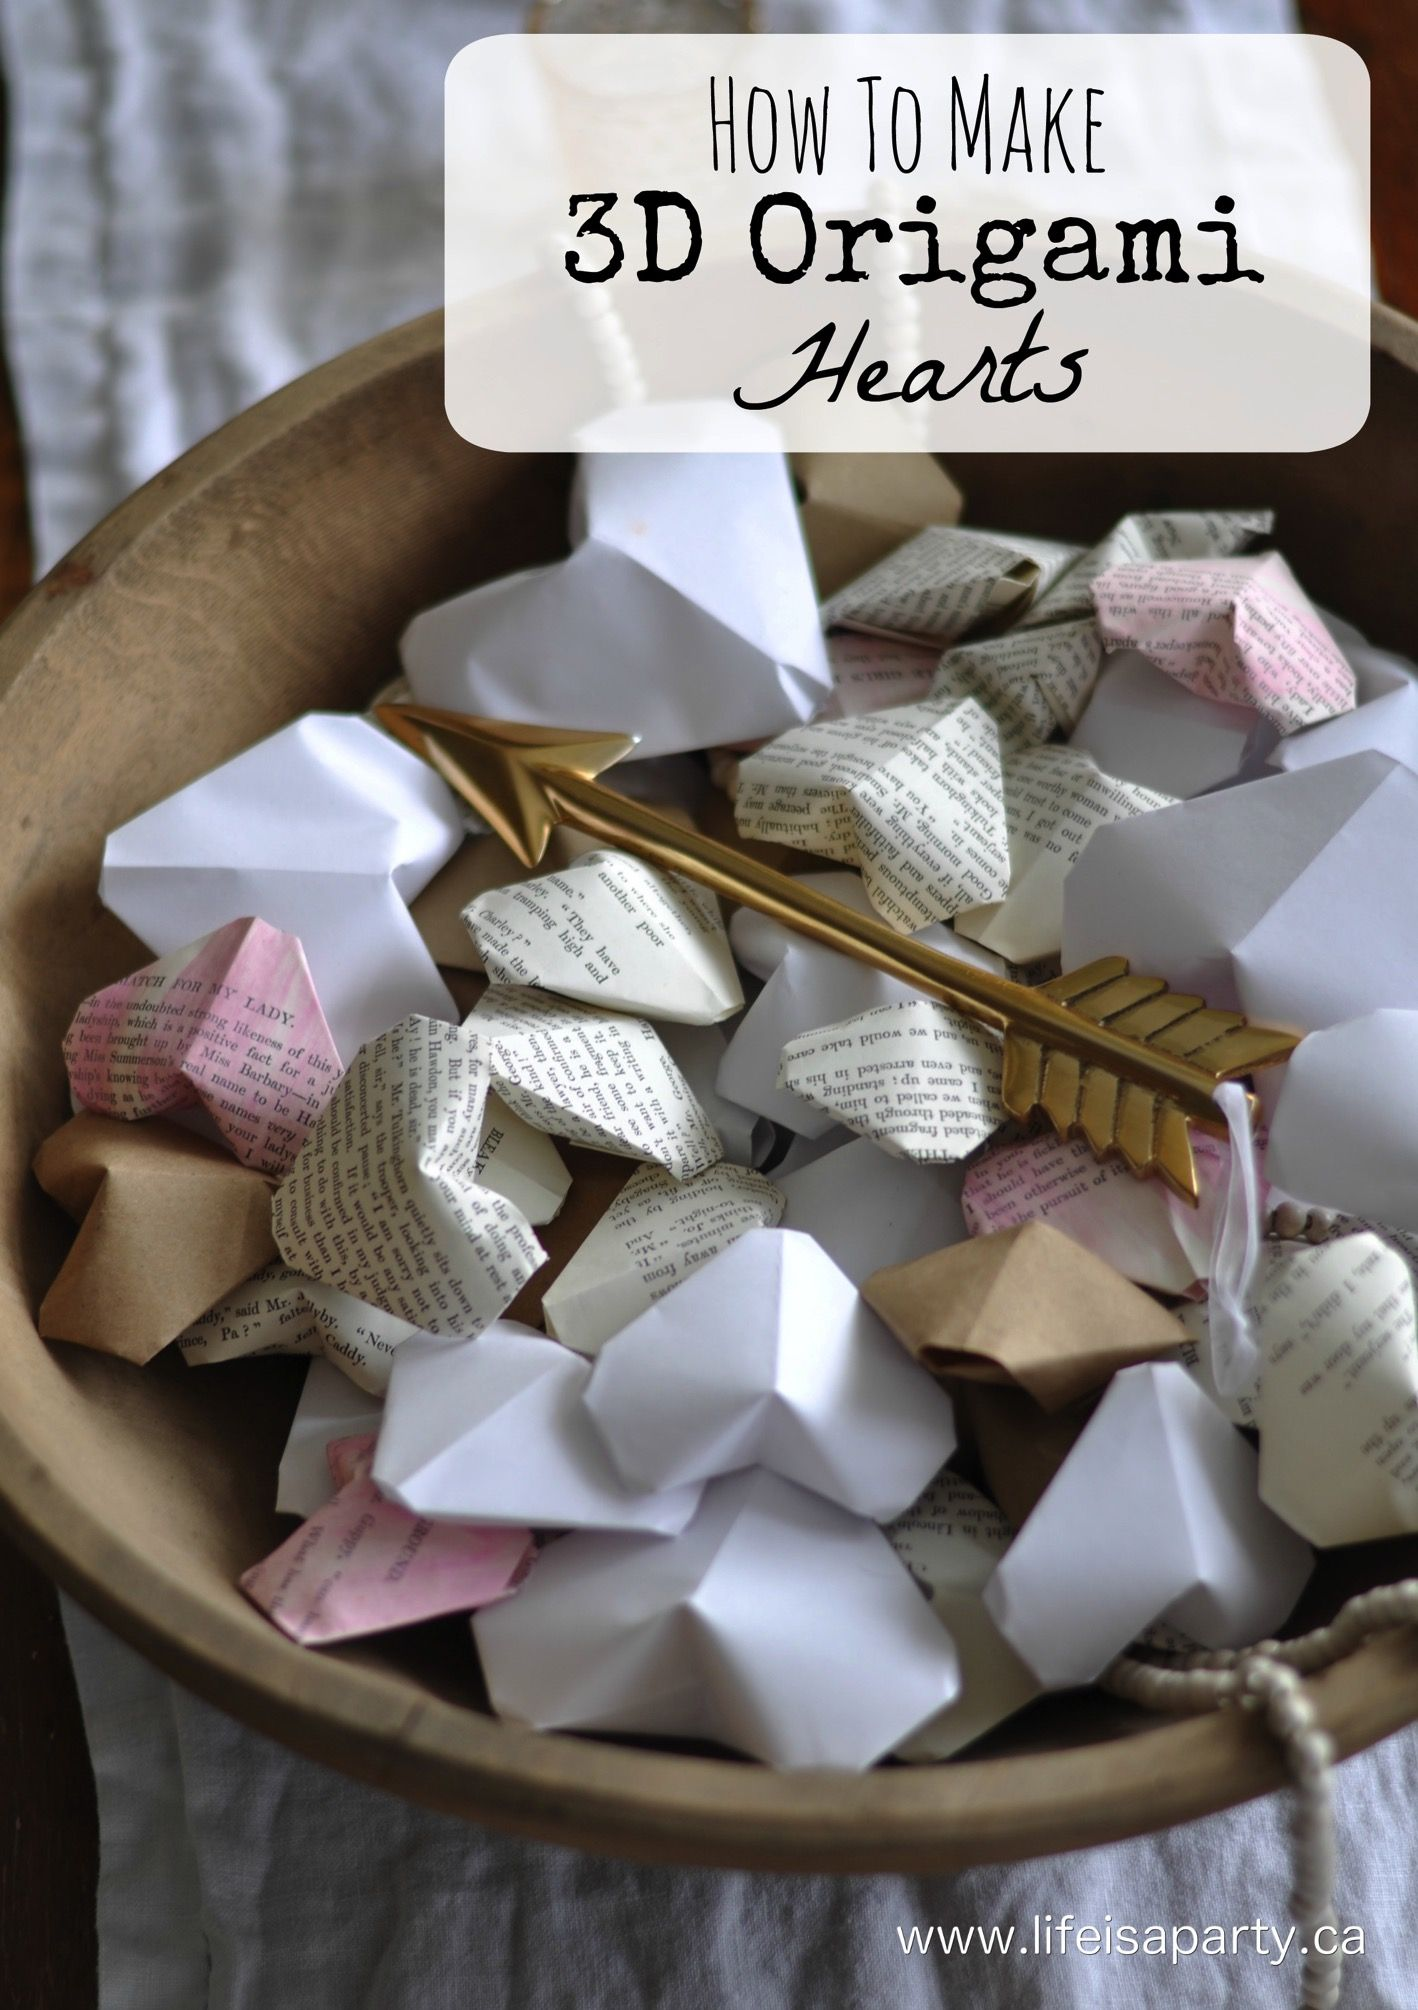 3D Origami Hearts: How To Make 3D Origami Hearts, with a ... - photo#26